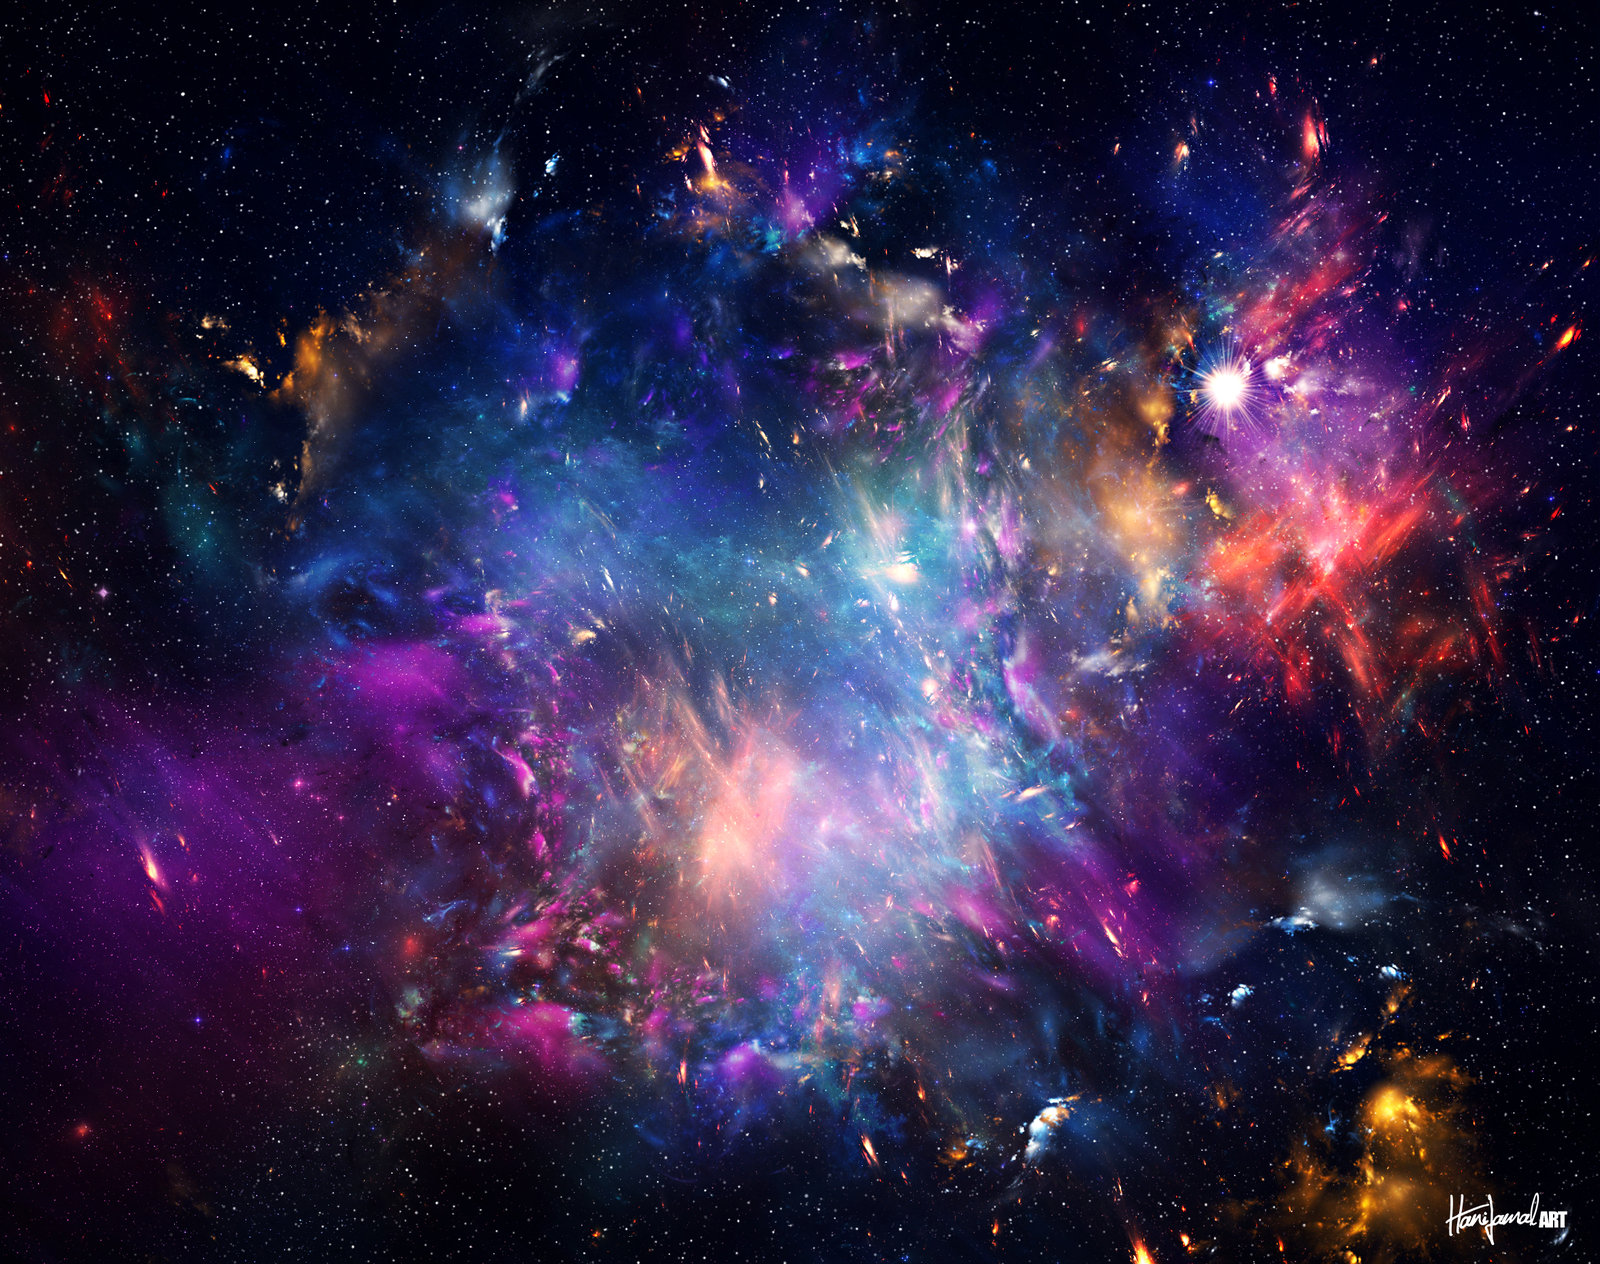 8k space wallpaper wallpapersafari for Sfondi spazio hd